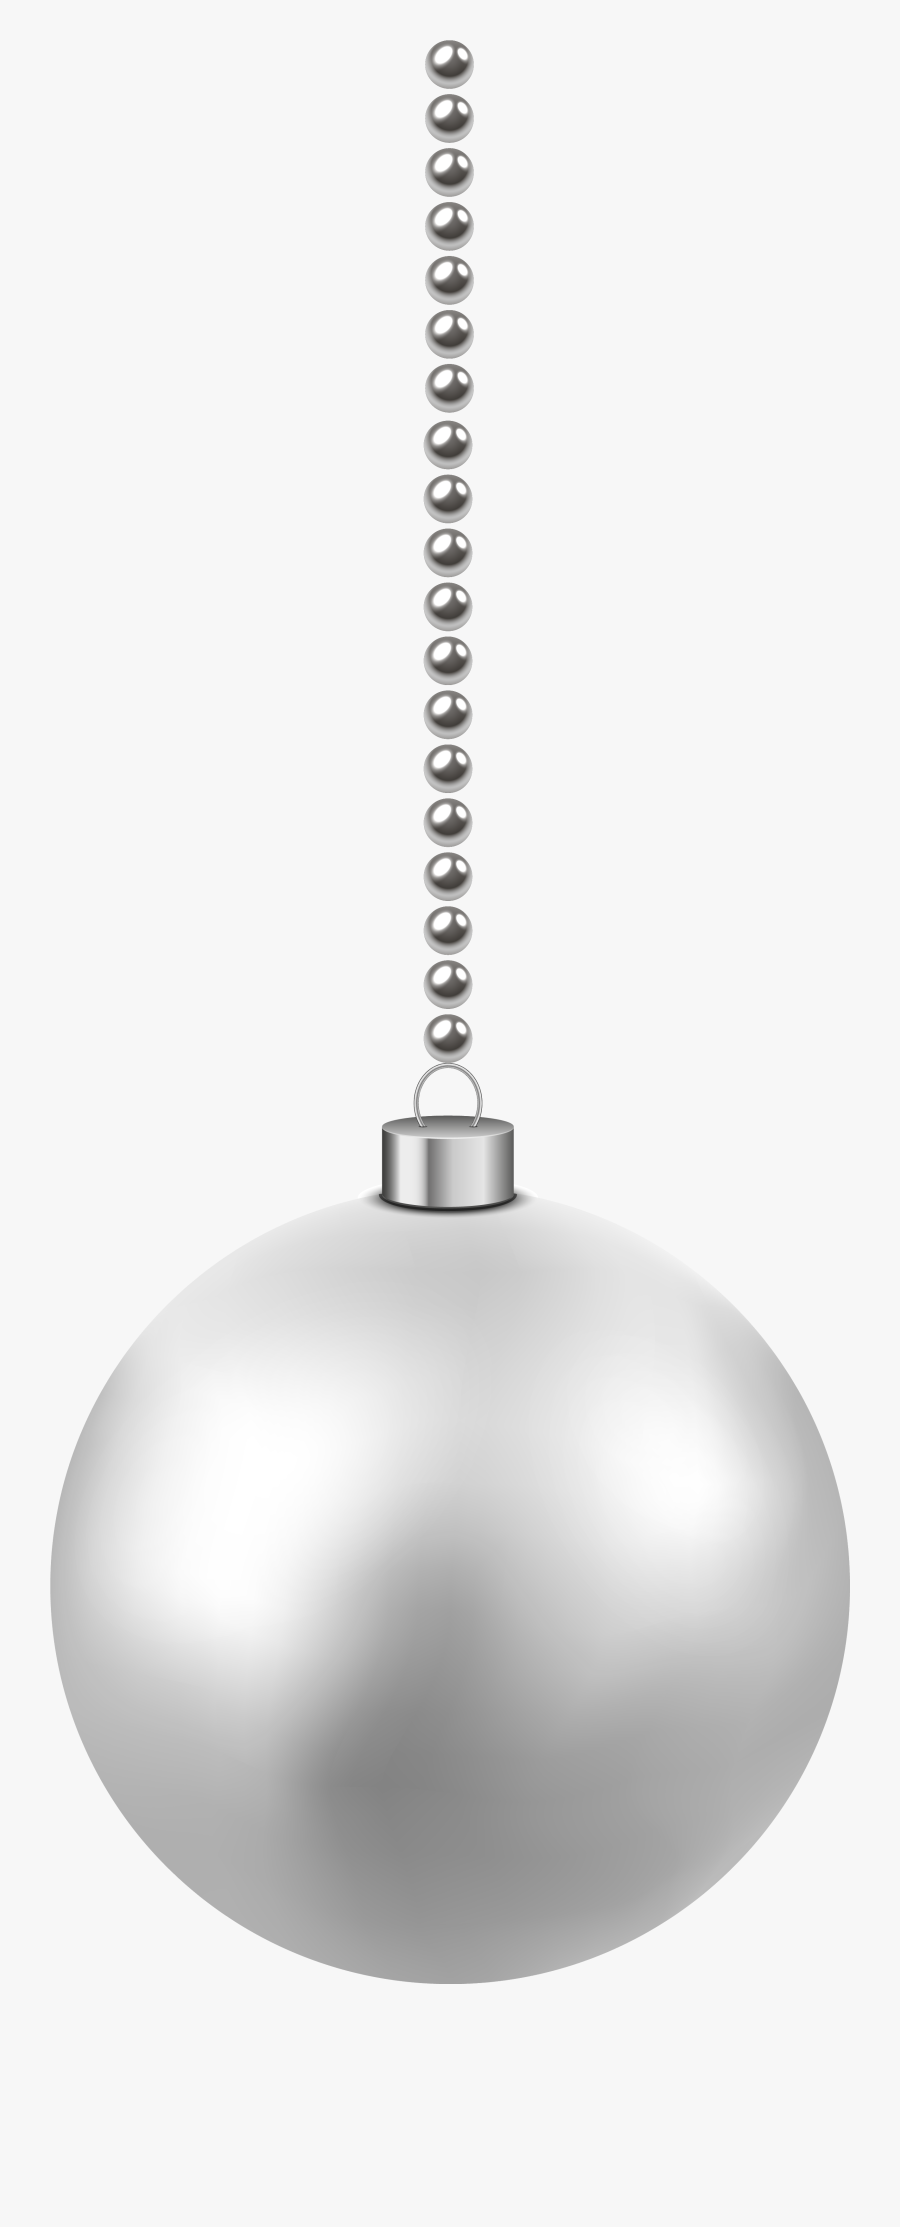 Antique Camera Clipart - White Christmas Ball Png, Transparent Clipart